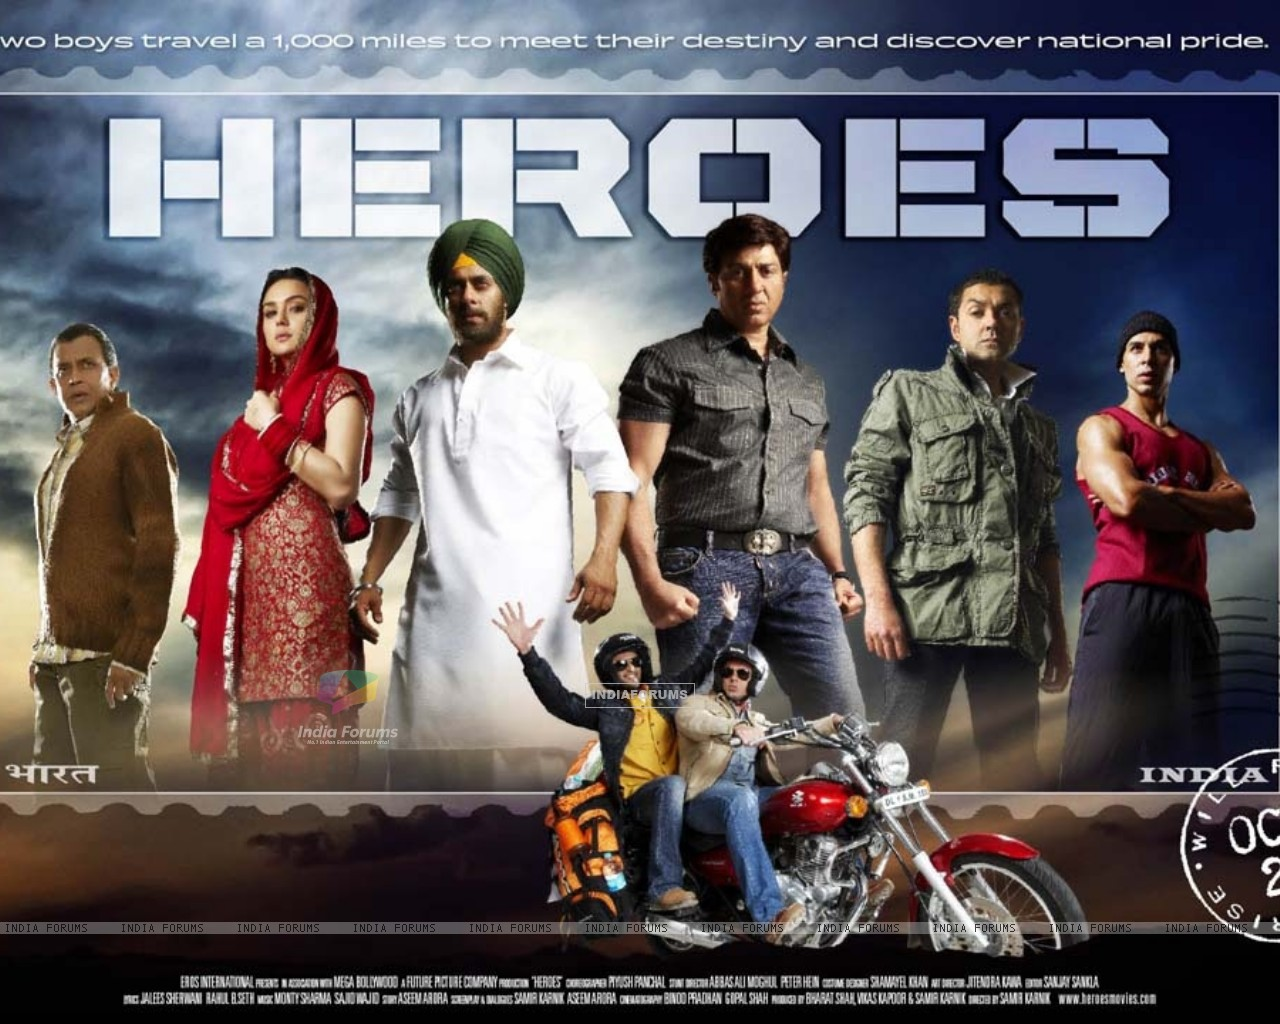 Wallpaper of Heroes movie (11979) size:1280x1024